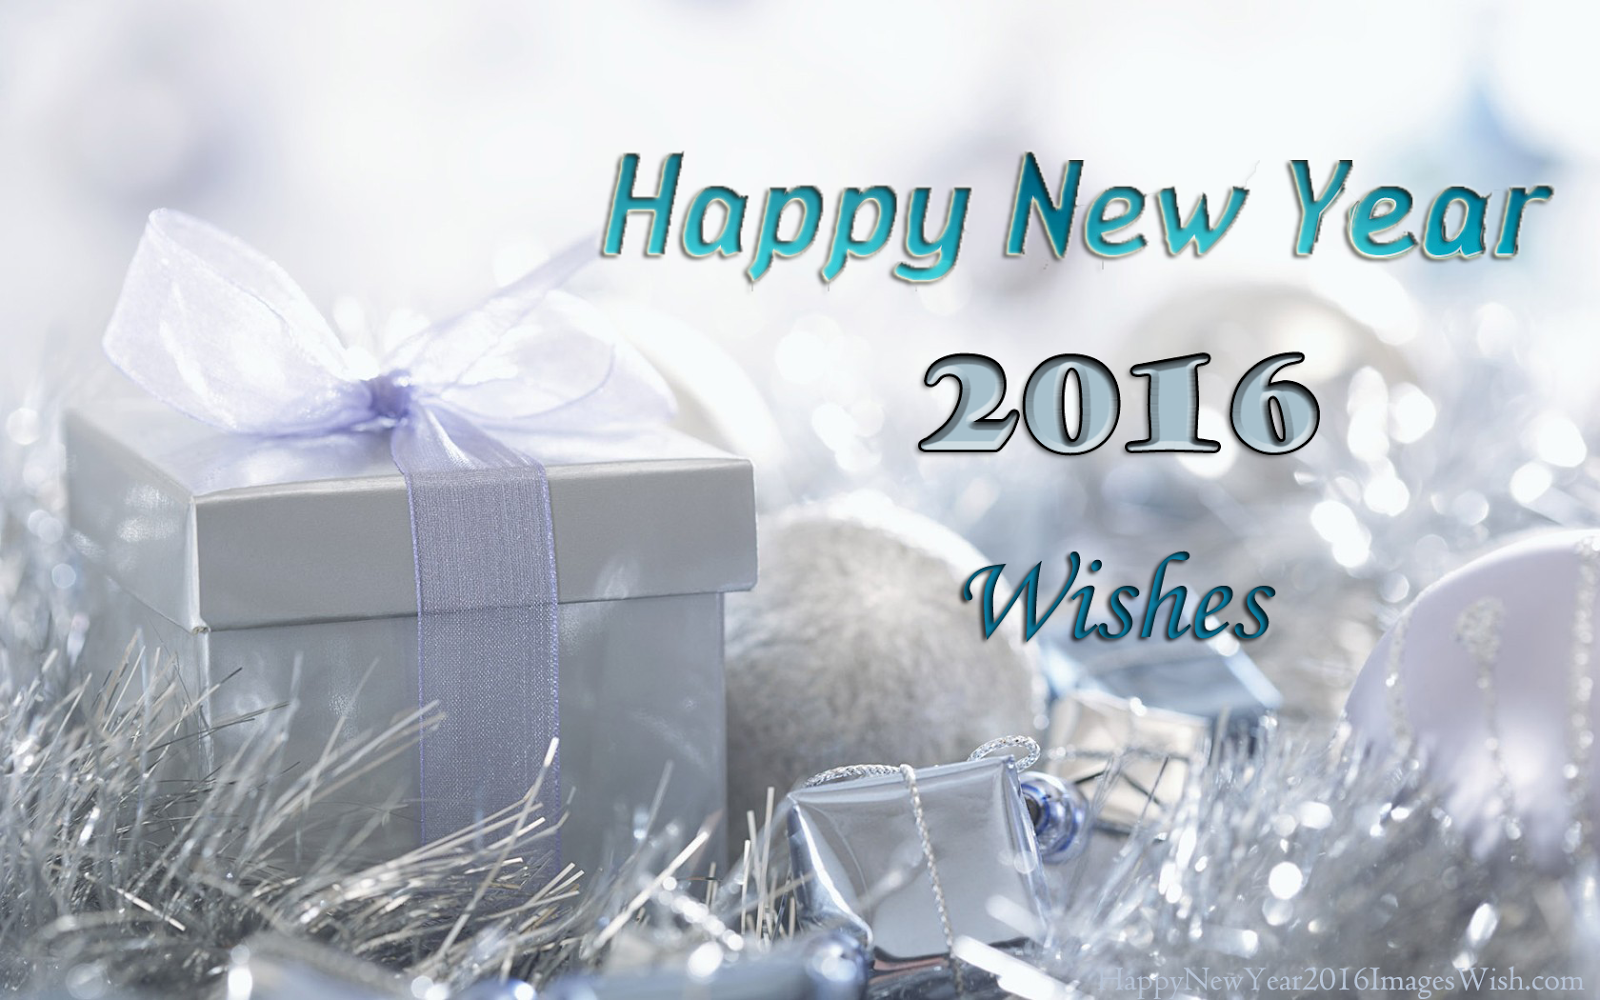 2016 HD Happy New Year Images